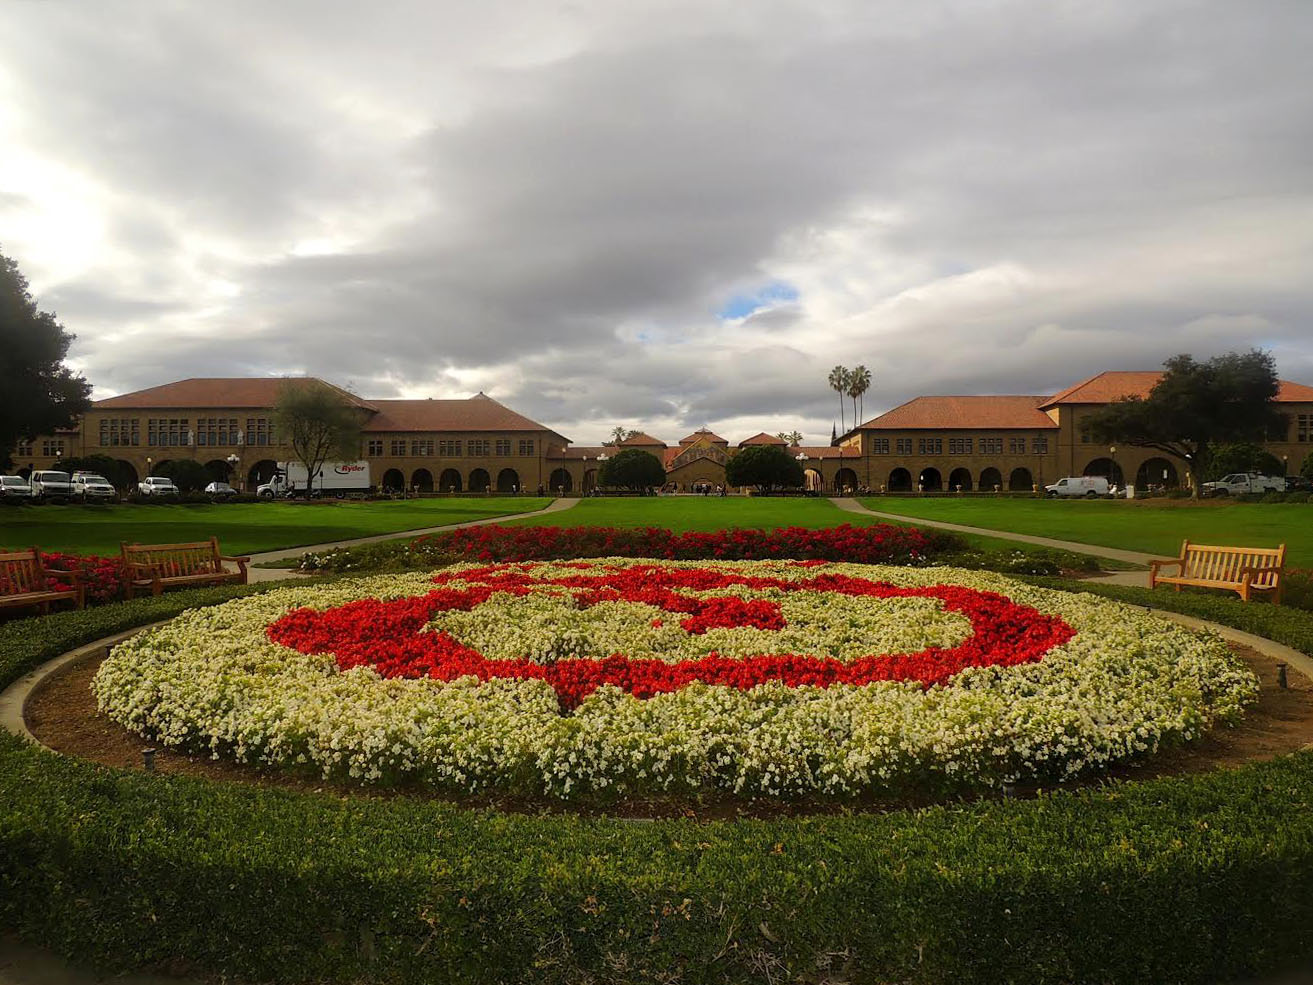 The Oval, a floral garden that features the cardinal S logo of Stanford University.